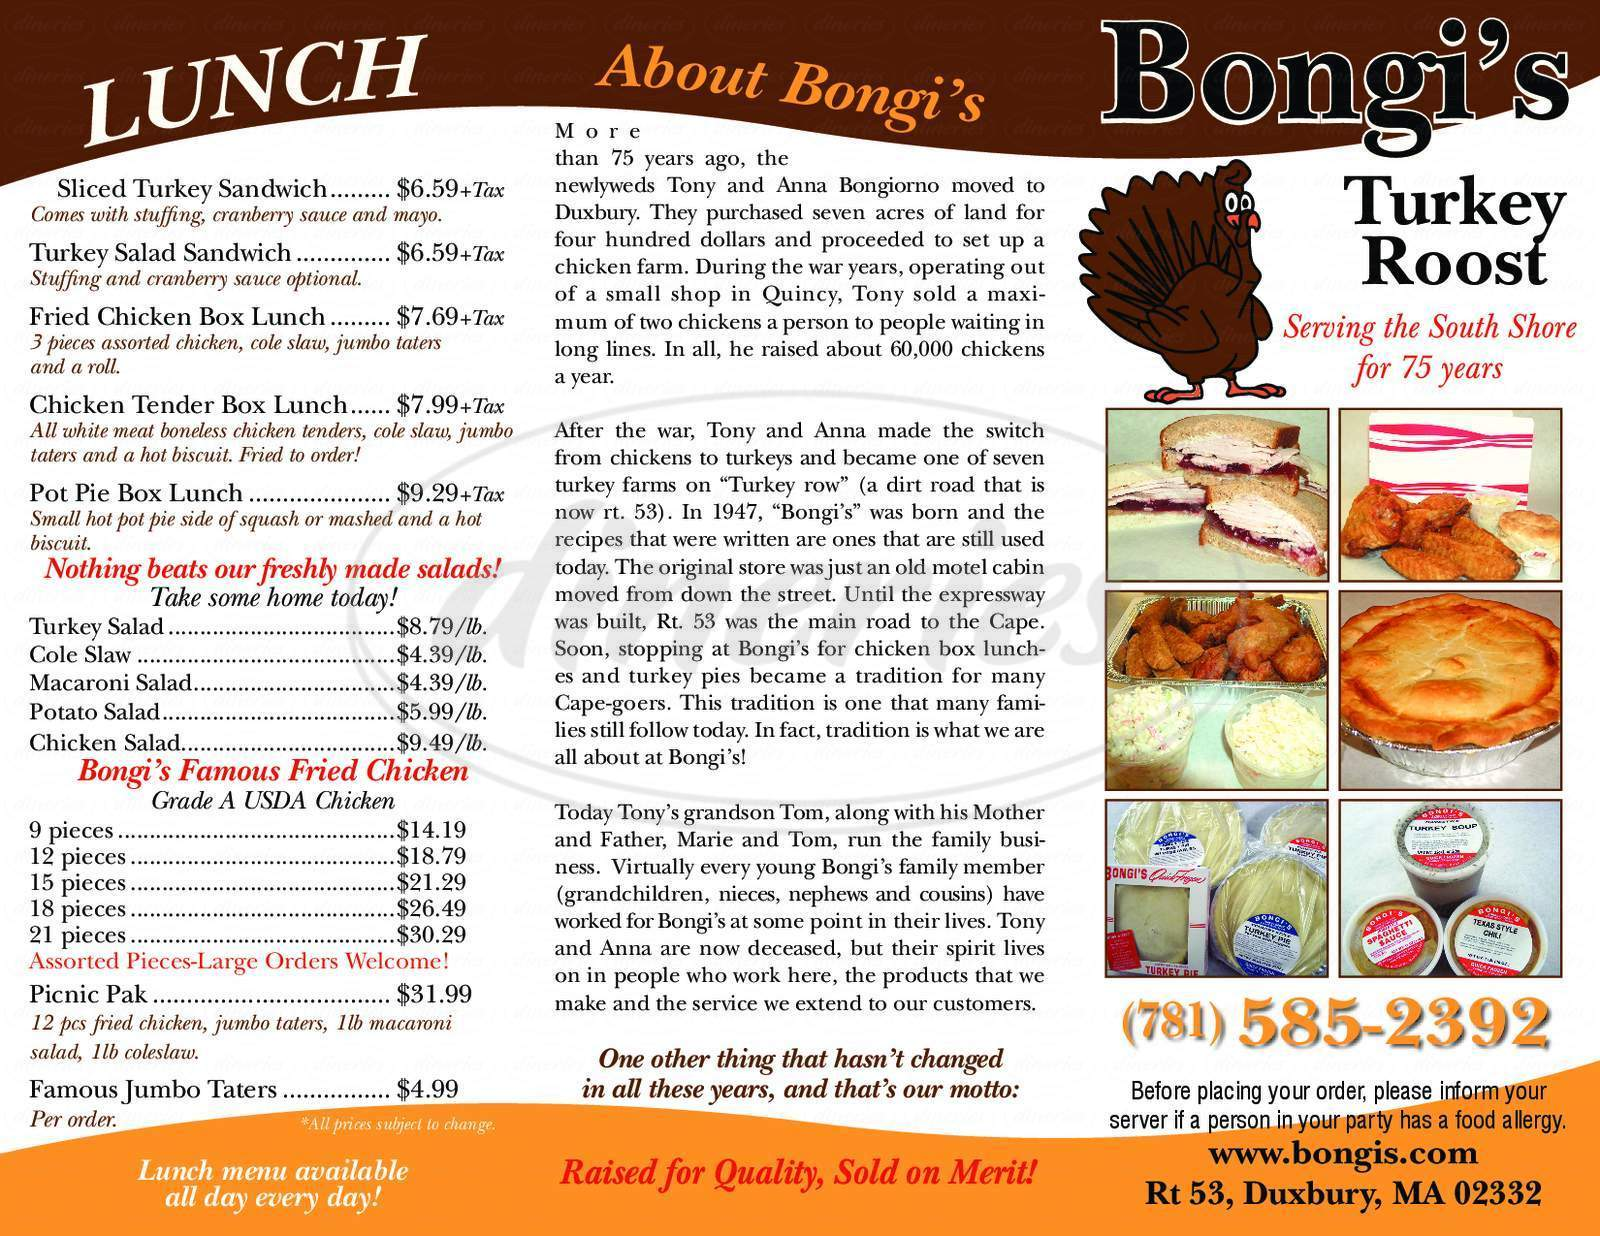 menu for Bongi's Turkey Roost